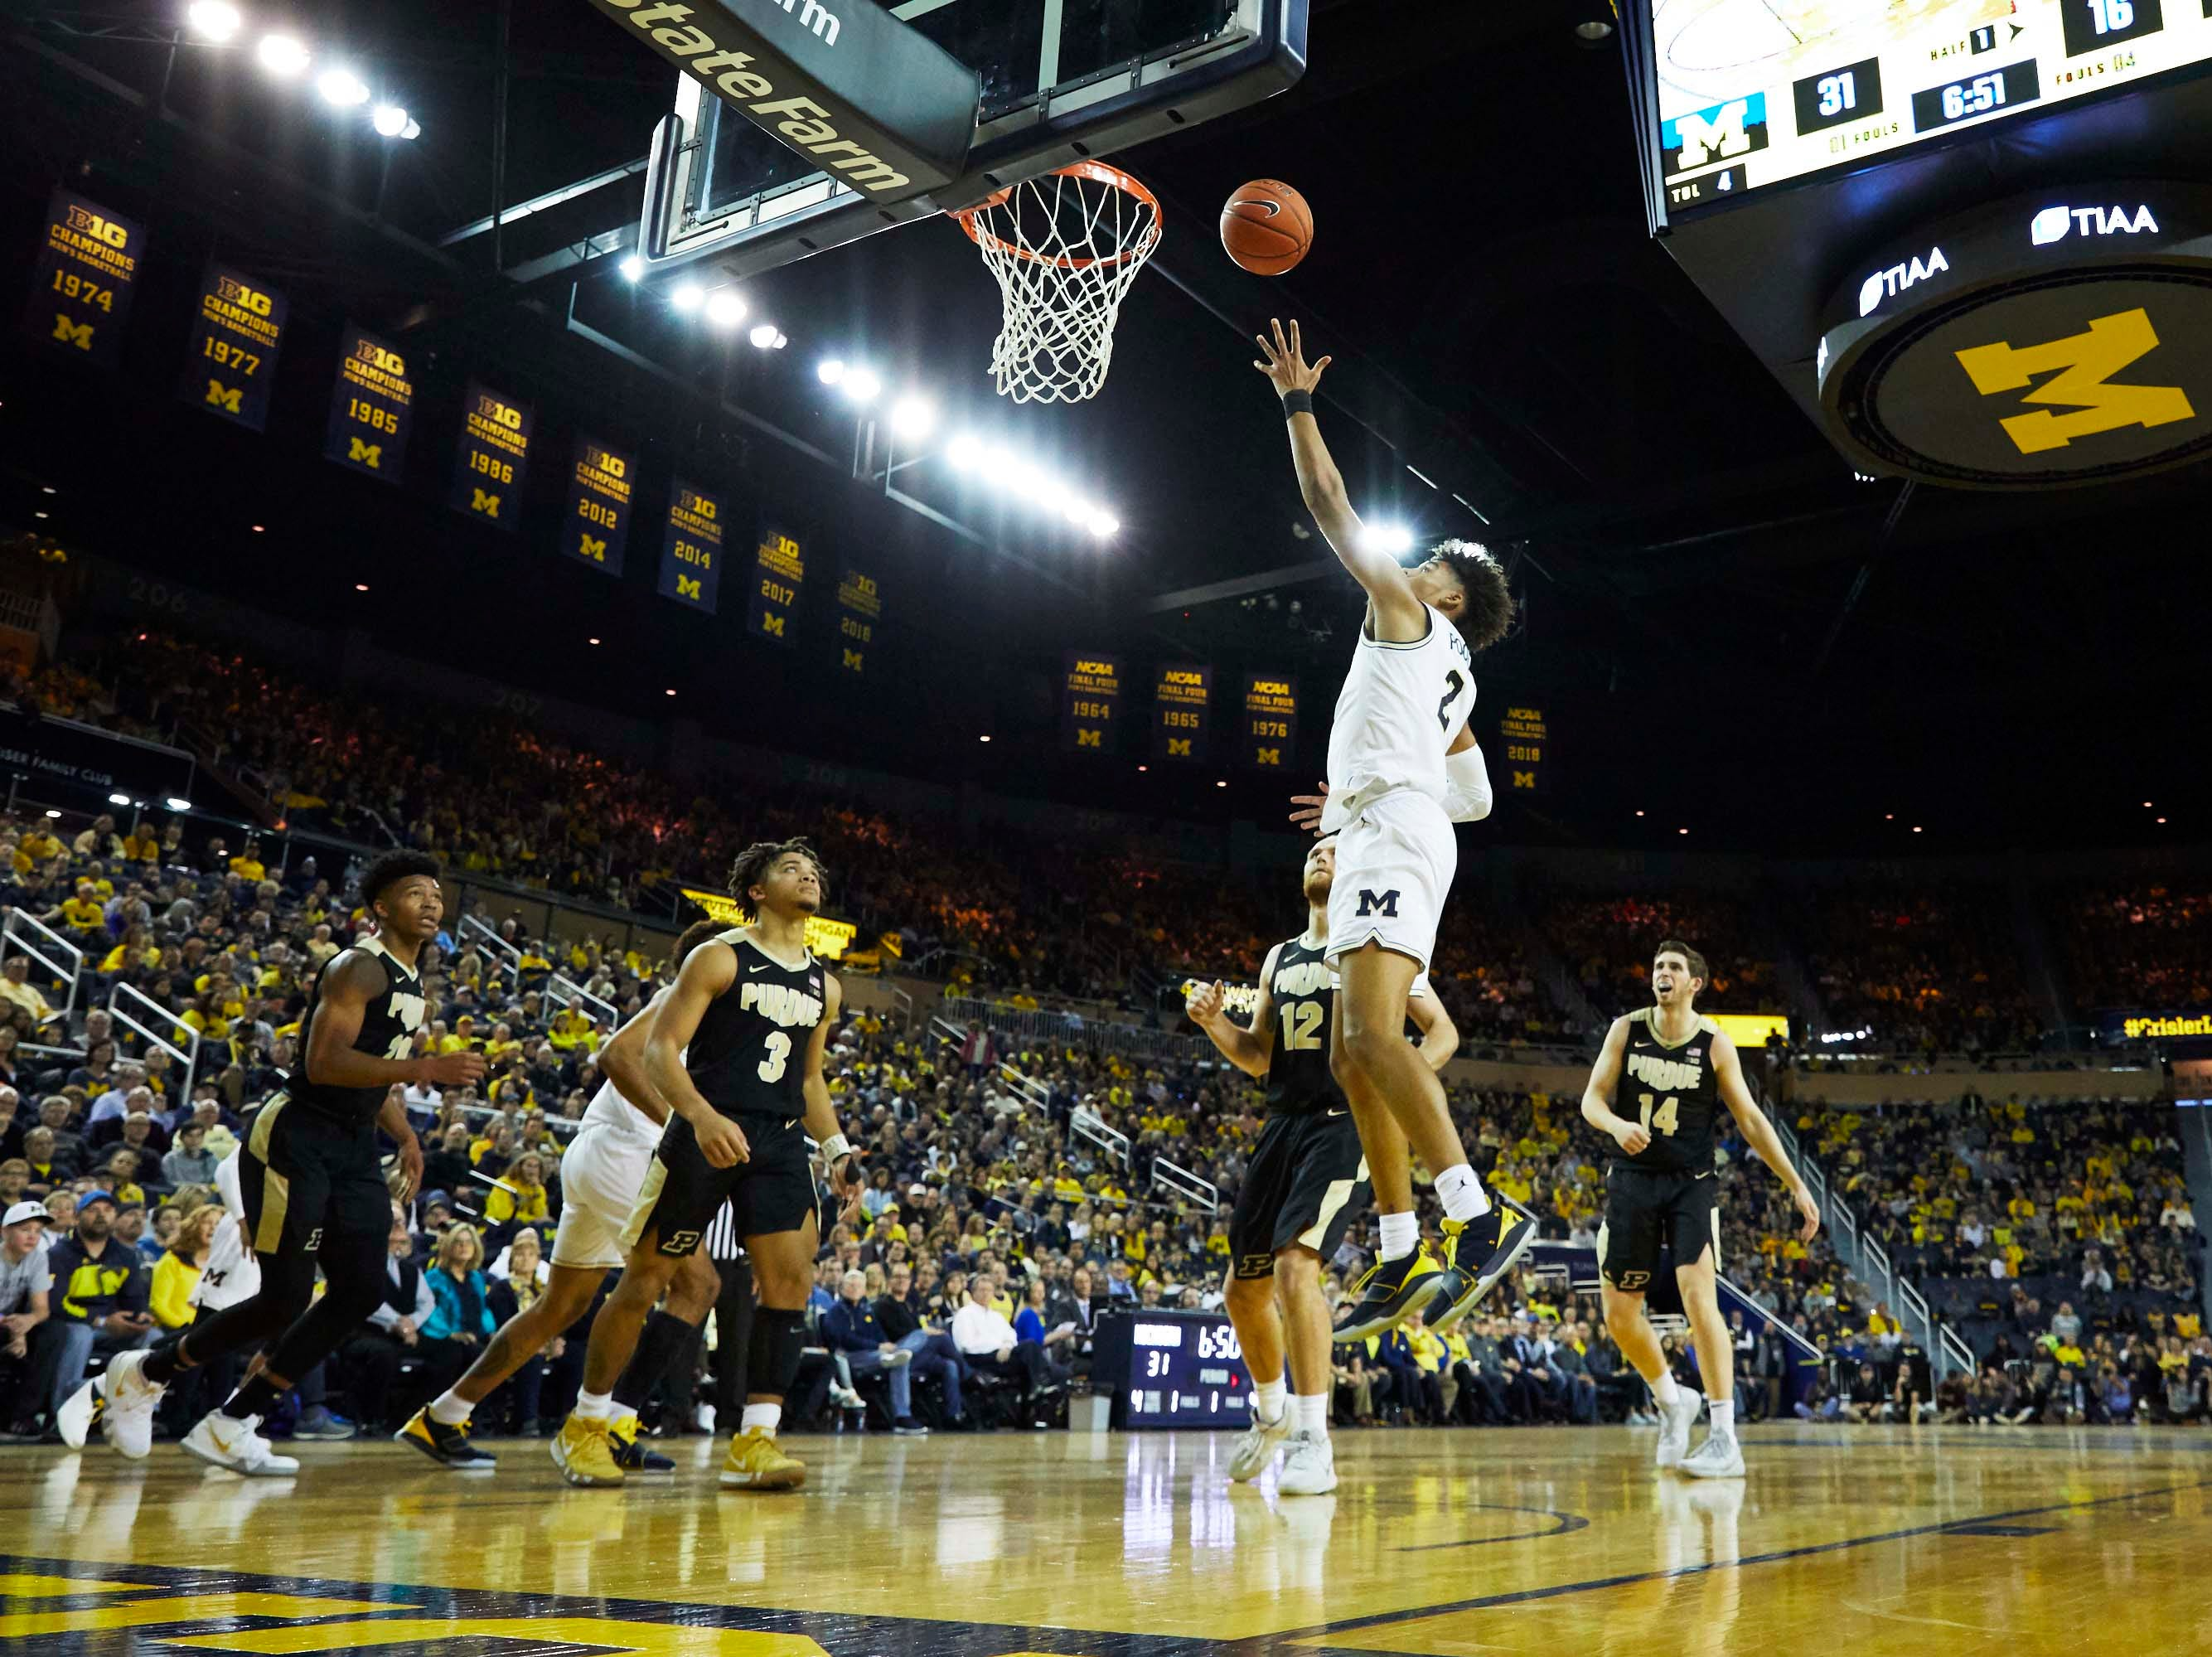 Dec 1, 2018; Ann Arbor, MI, USA; Michigan Wolverines guard Jordan Poole (2) shoots in the first half against the Purdue Boilermakers at Crisler Center. Mandatory Credit: Rick Osentoski-USA TODAY Sports